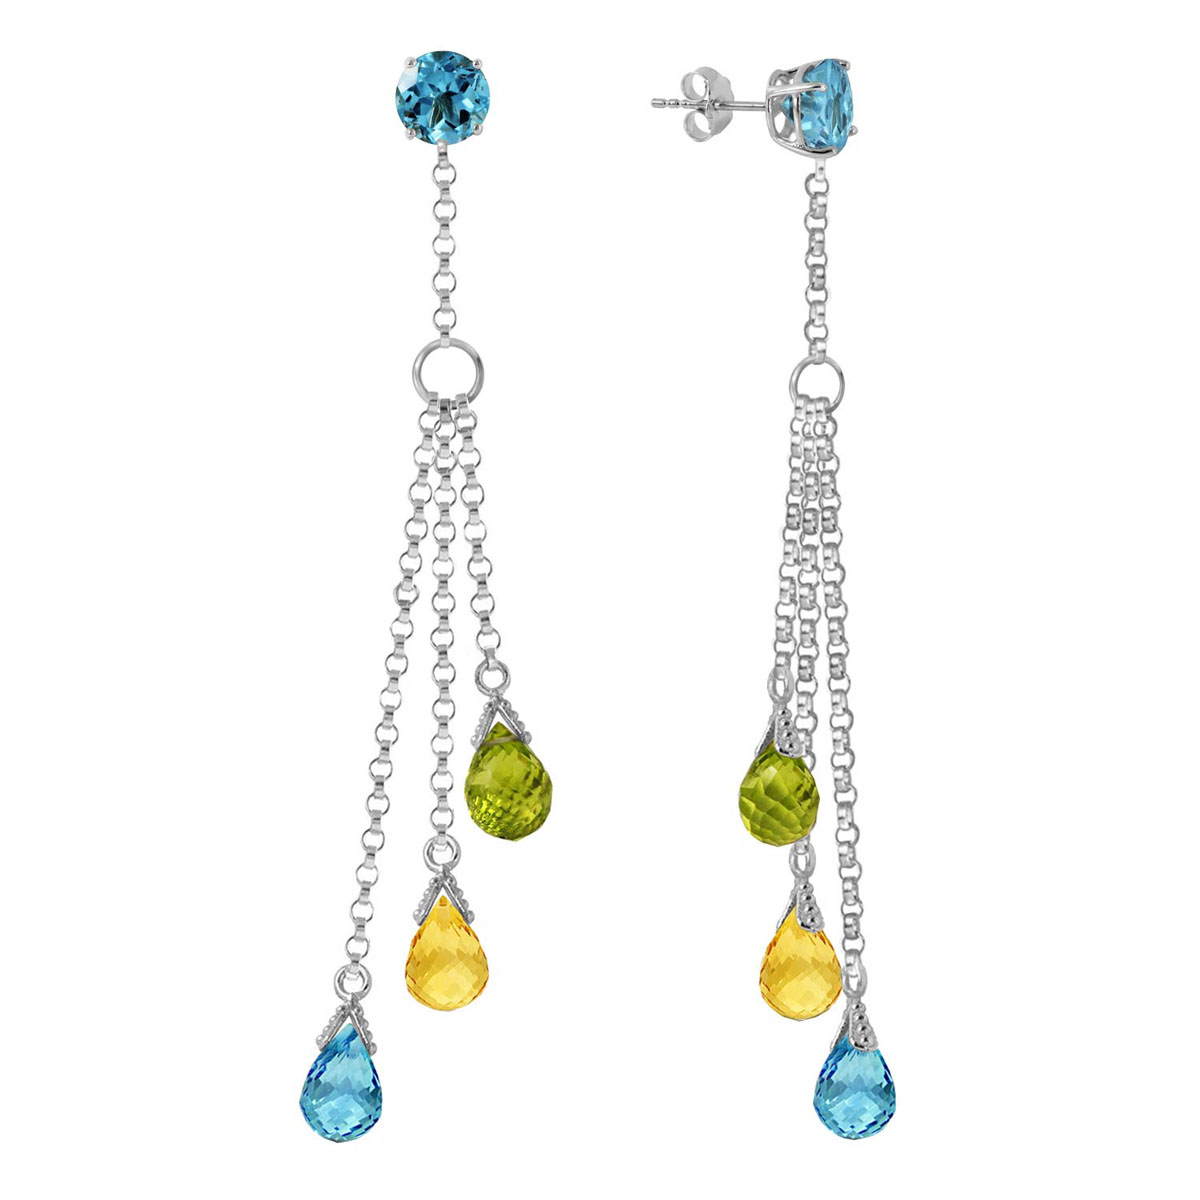 Blue Topaz, Citrine & Peridot Trilogy Droplet Earrings in 9ct White Gold